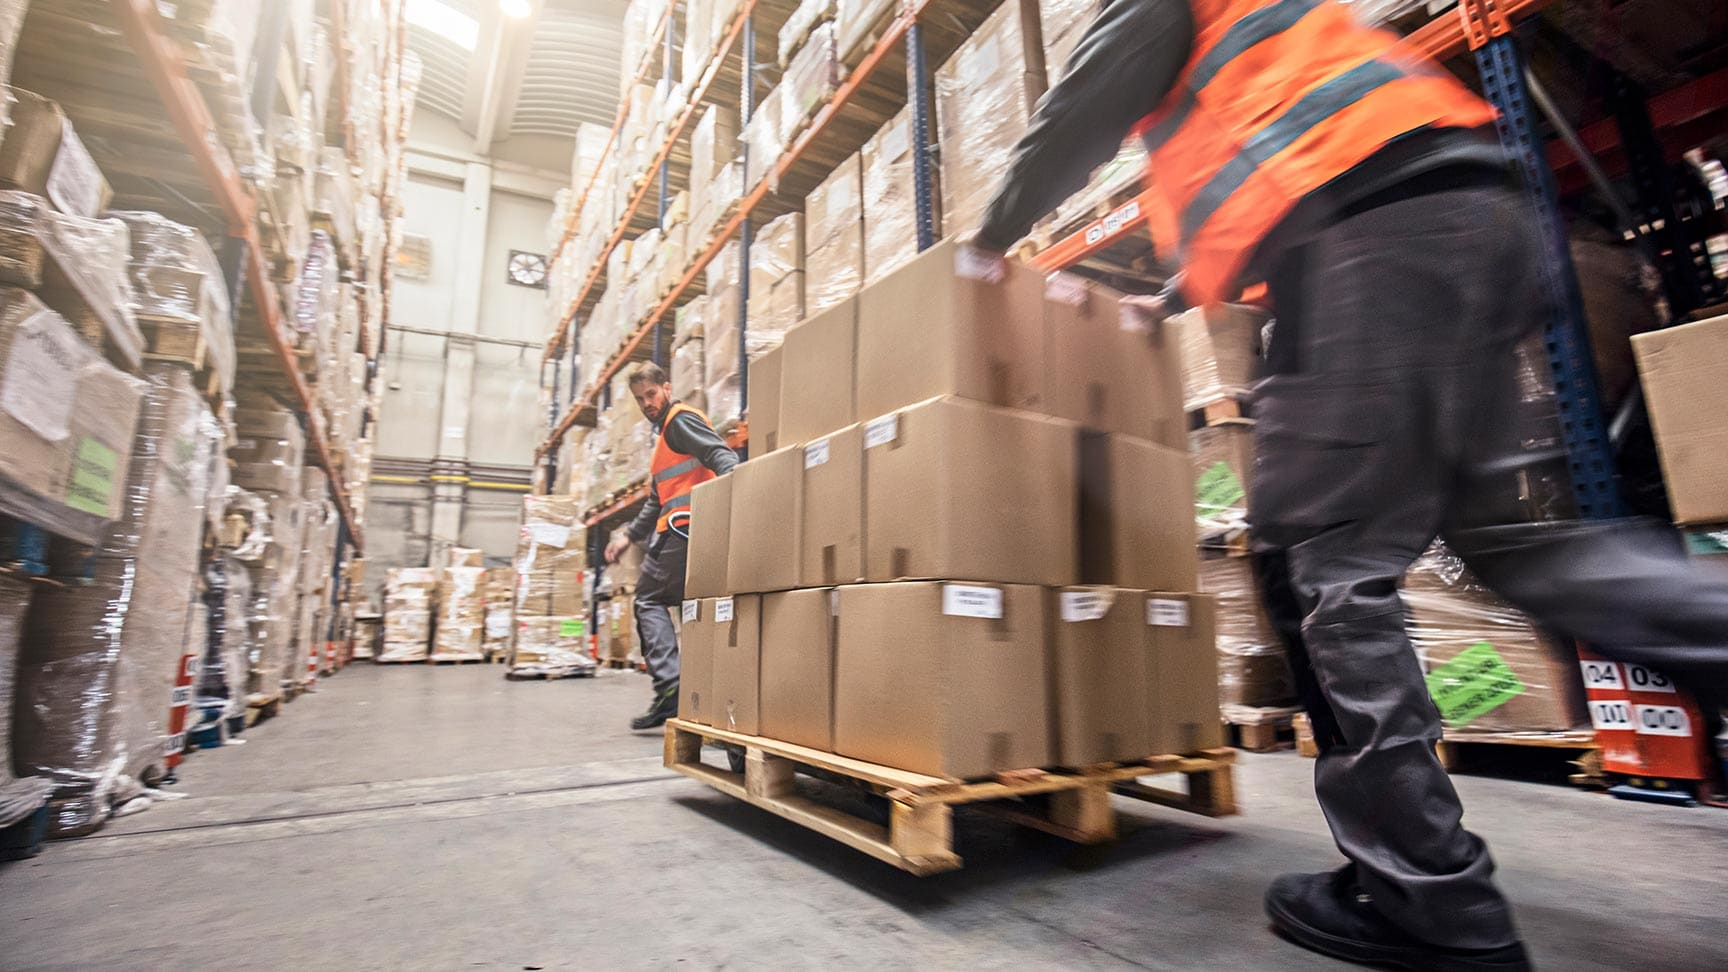 man carrying cargo cart loaded with packages through warehouse